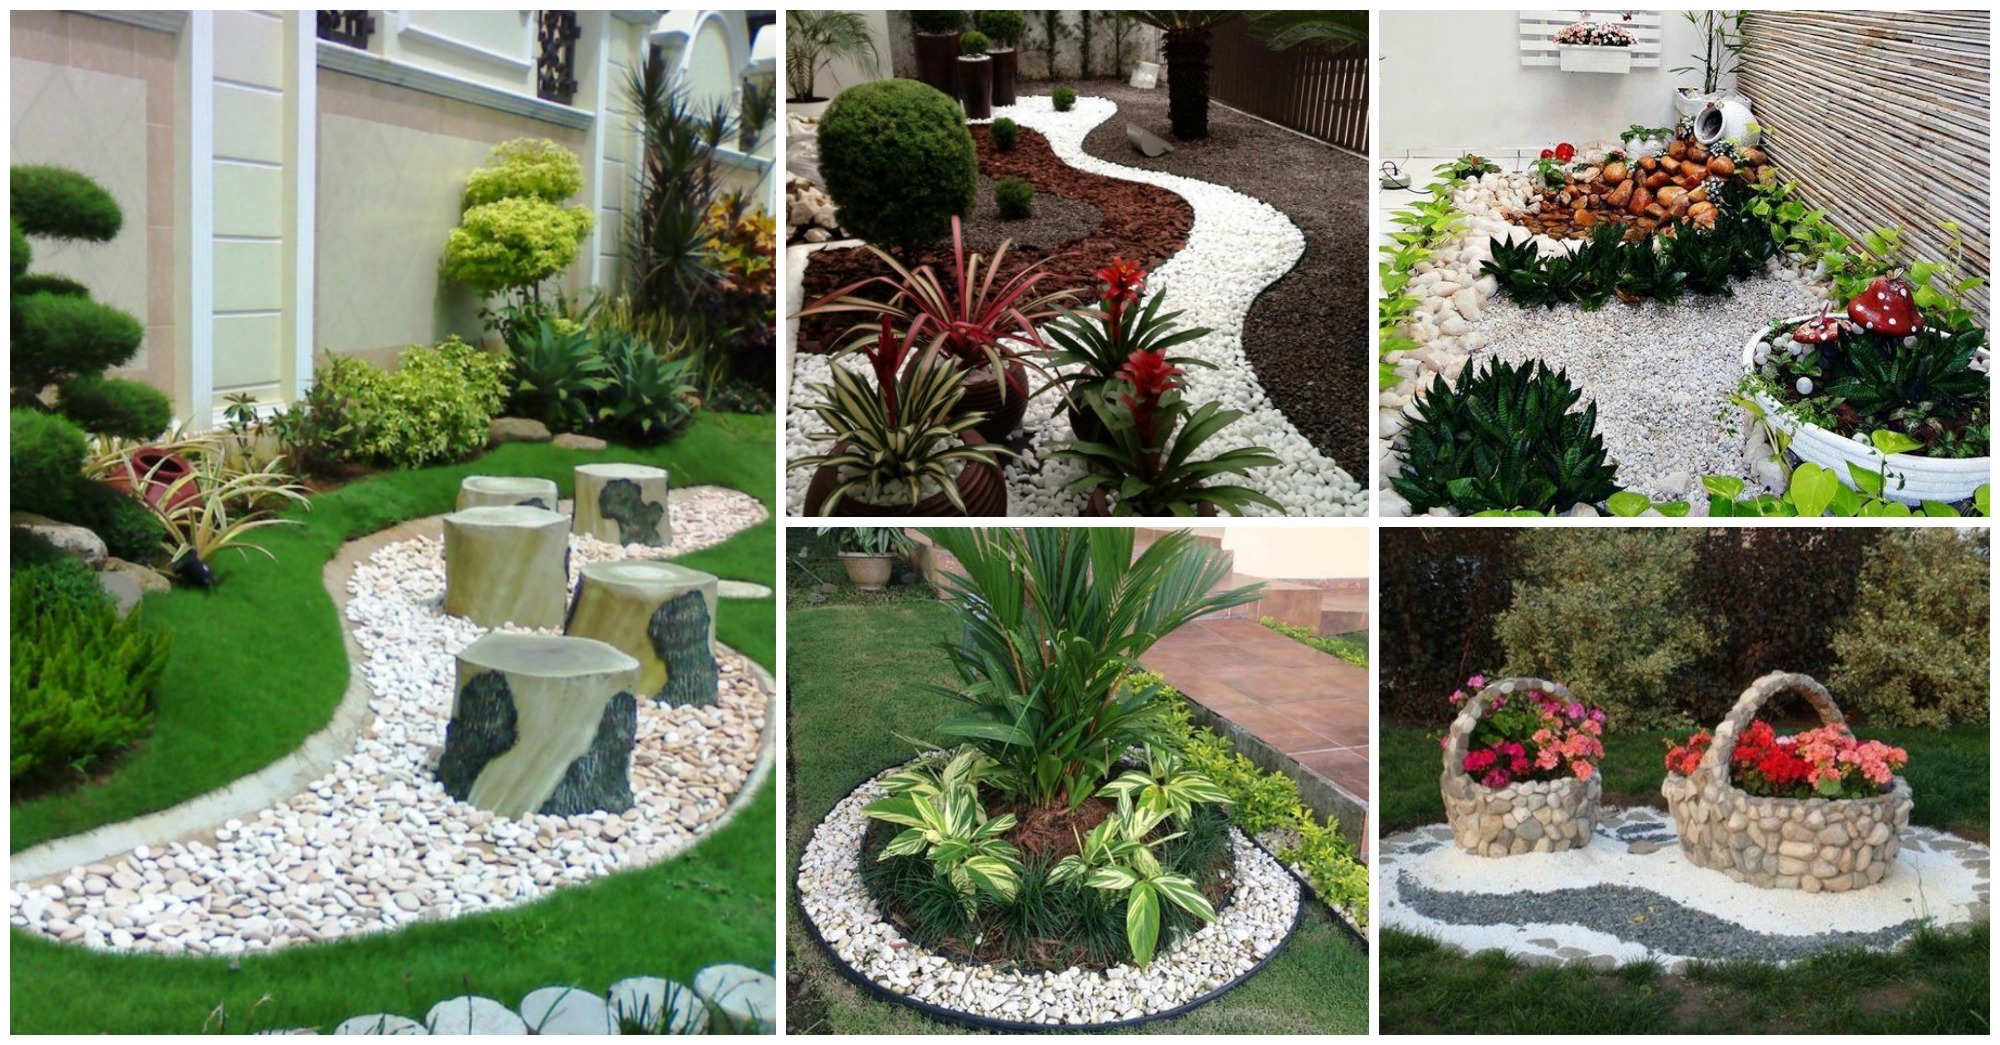 12 fant sticas ideas para dise ar un jard n con piedras for Ideas para decorar jardines pequenos